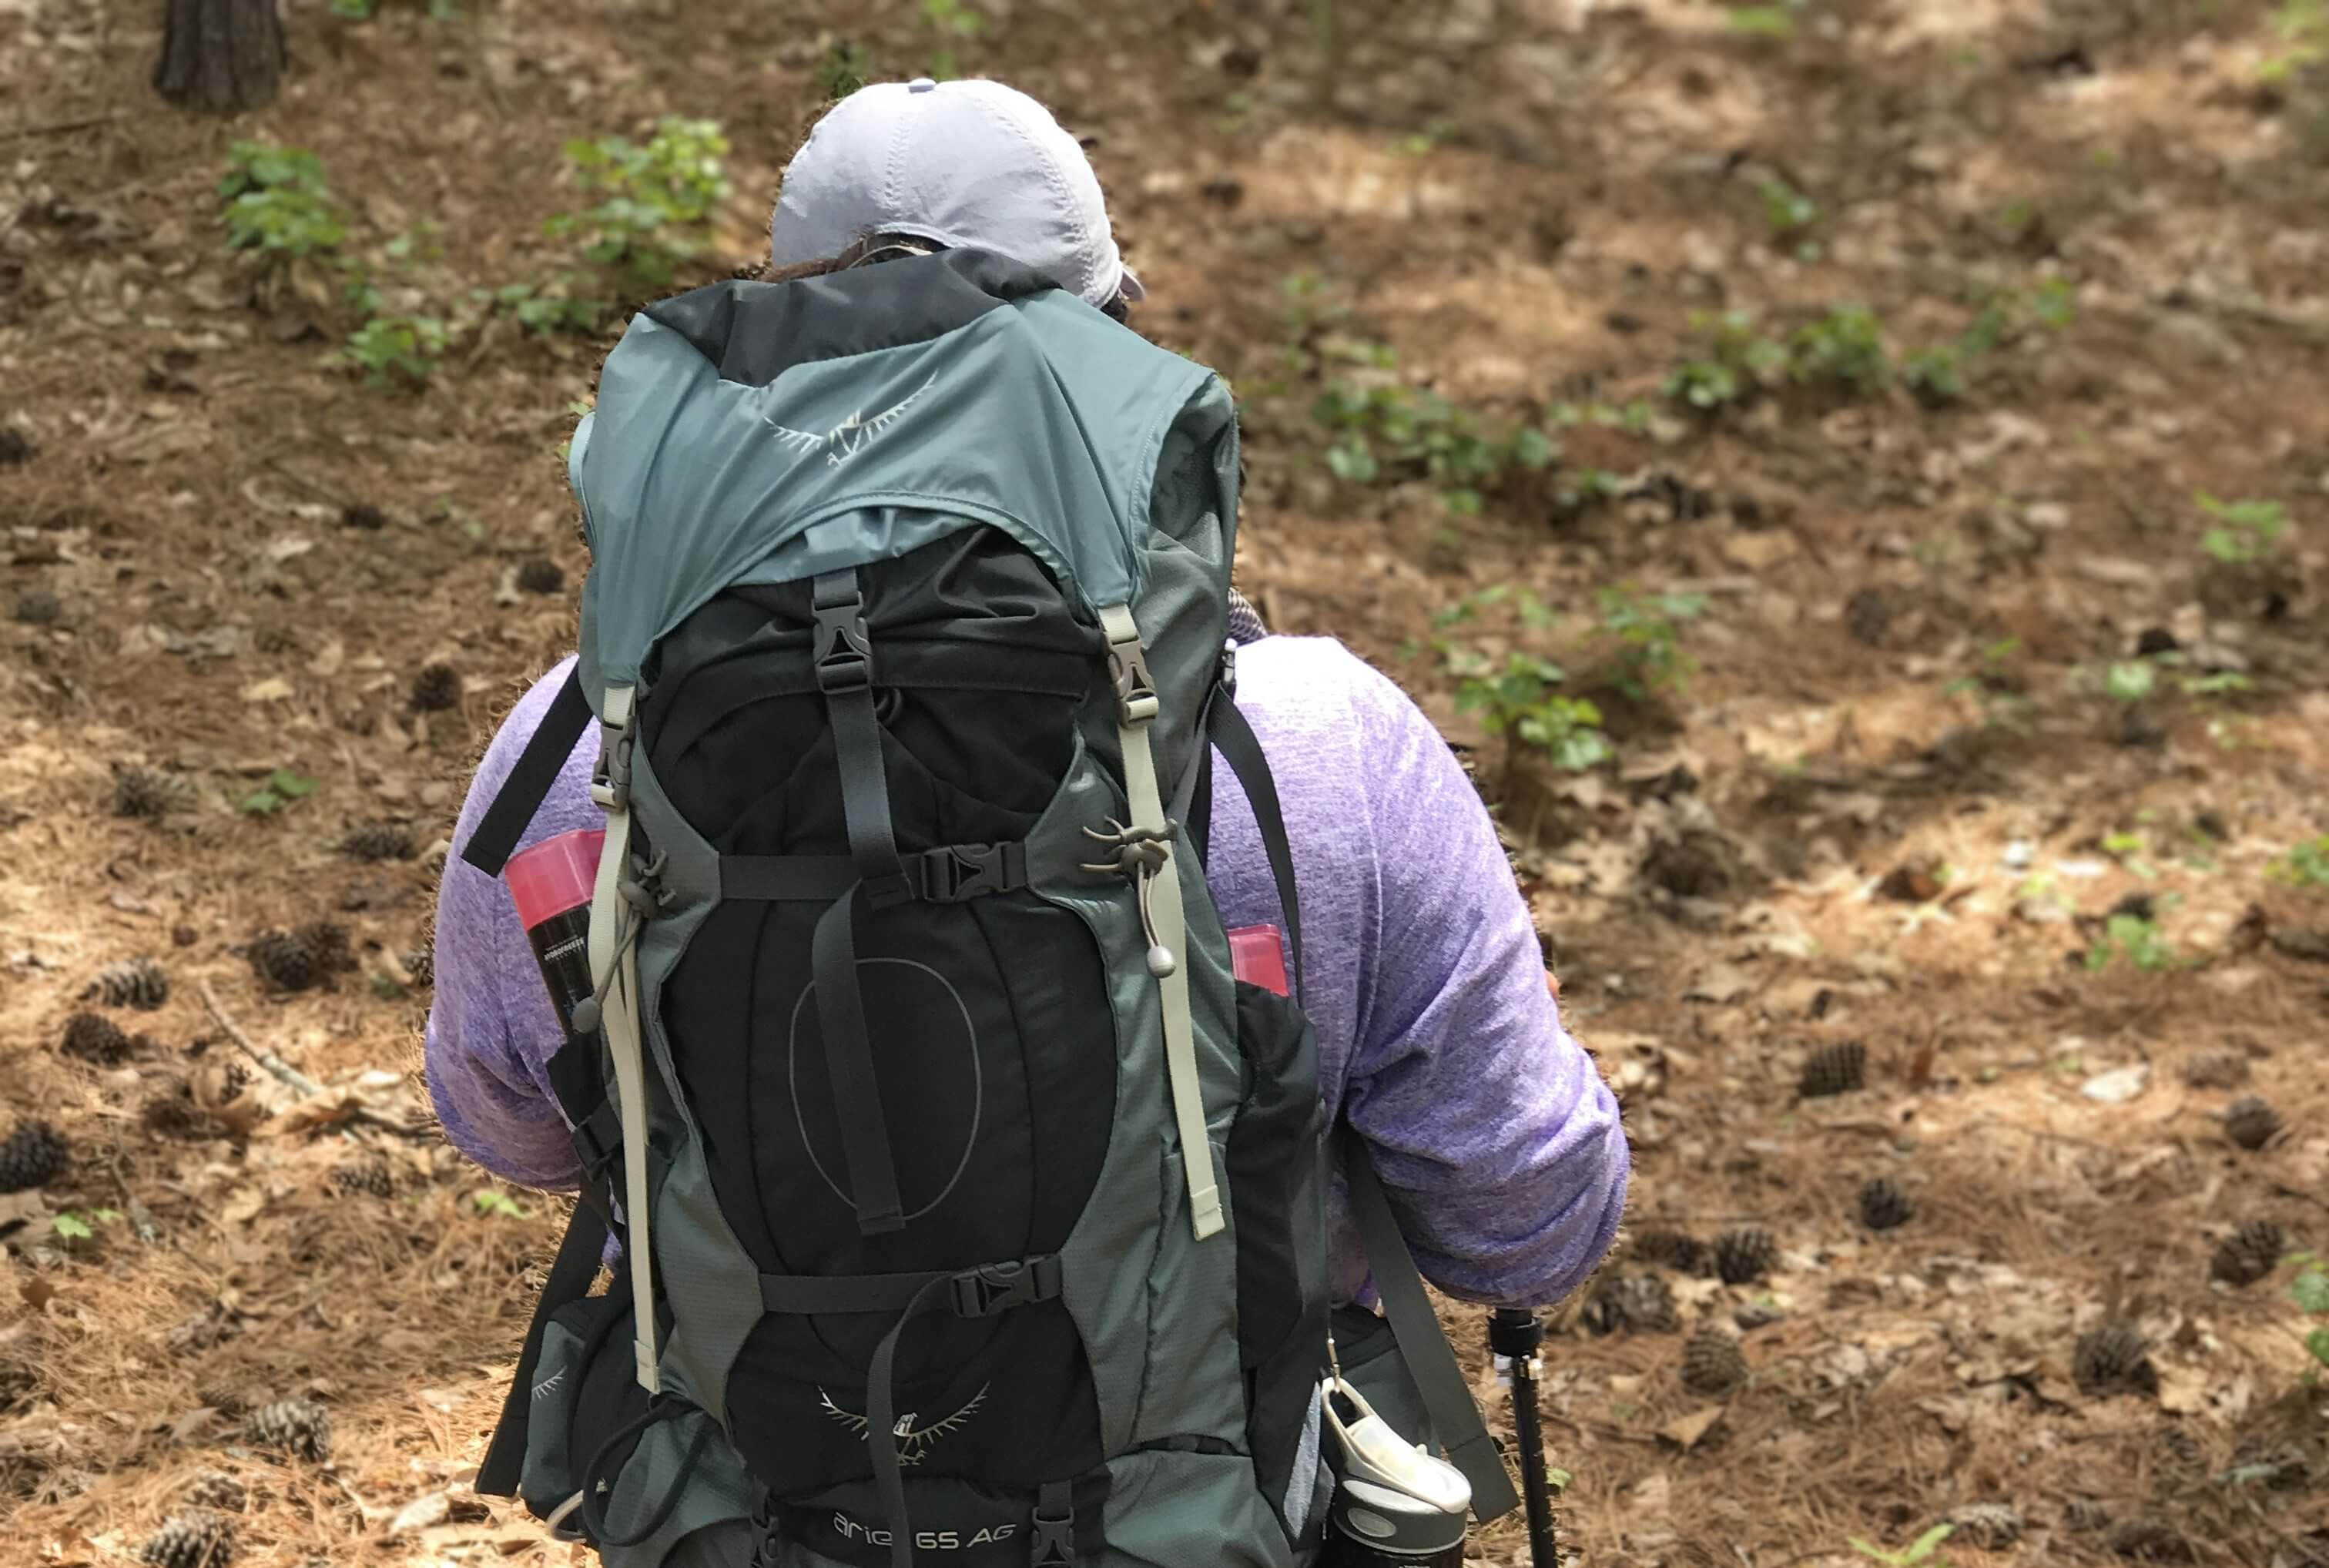 Appalachian Trail Gives Purpose to Busy Mom